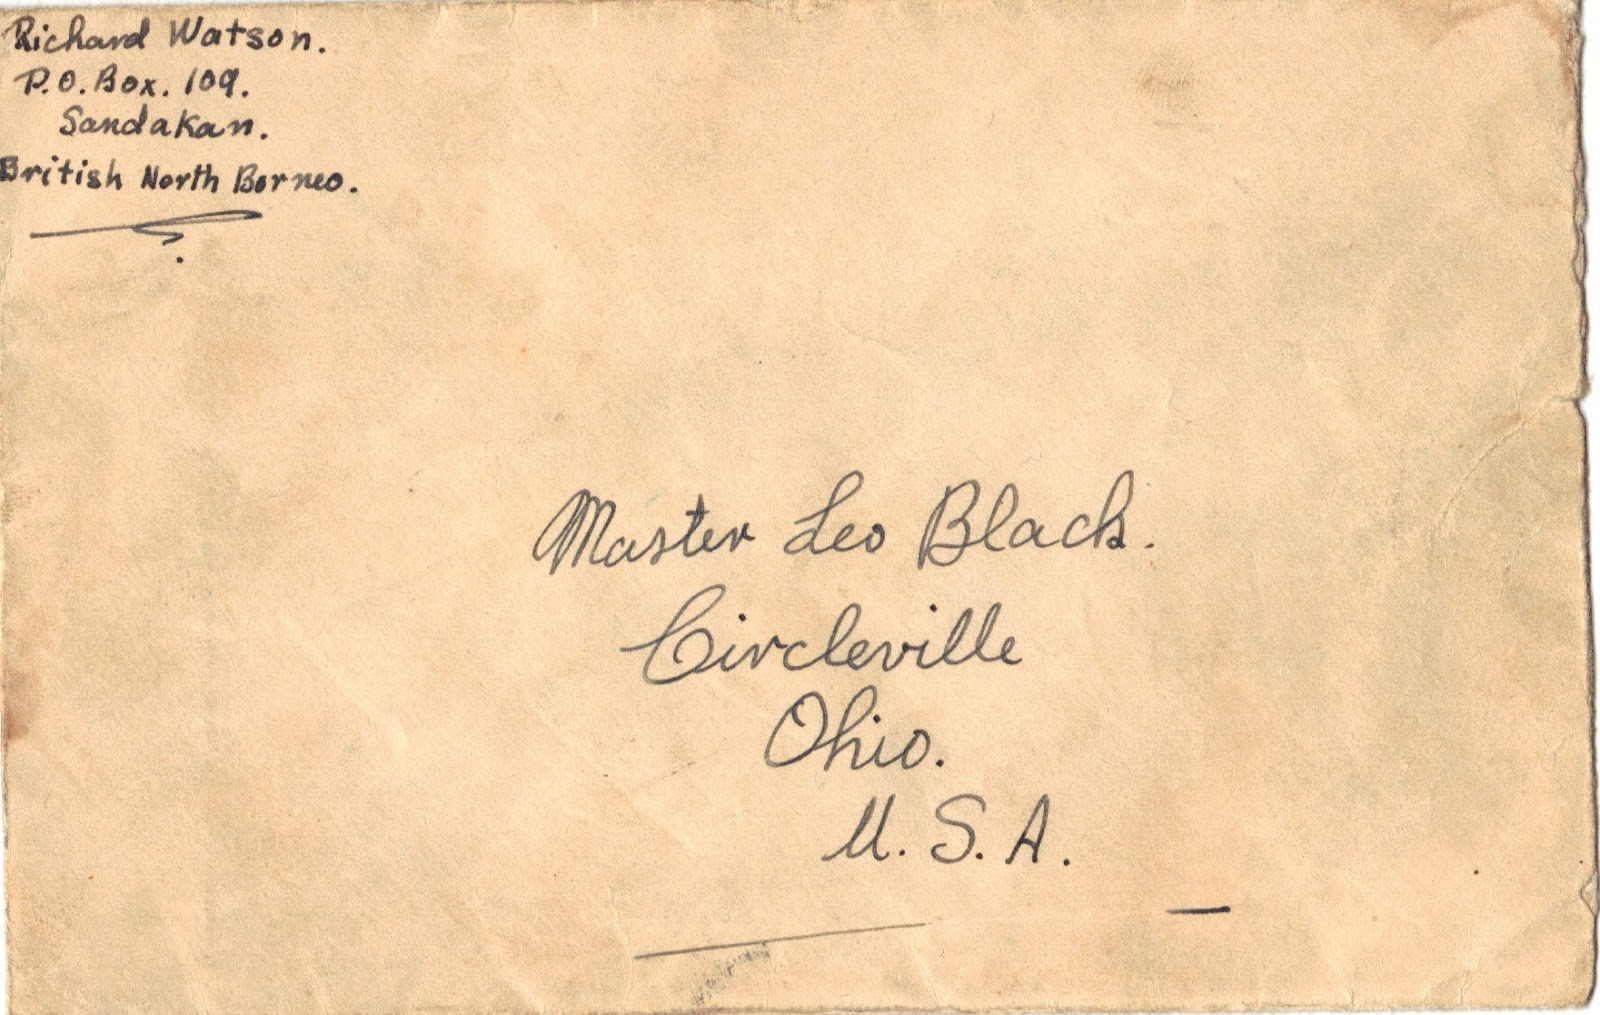 My North Borneo Stamps An Interesting Letter In A Cover